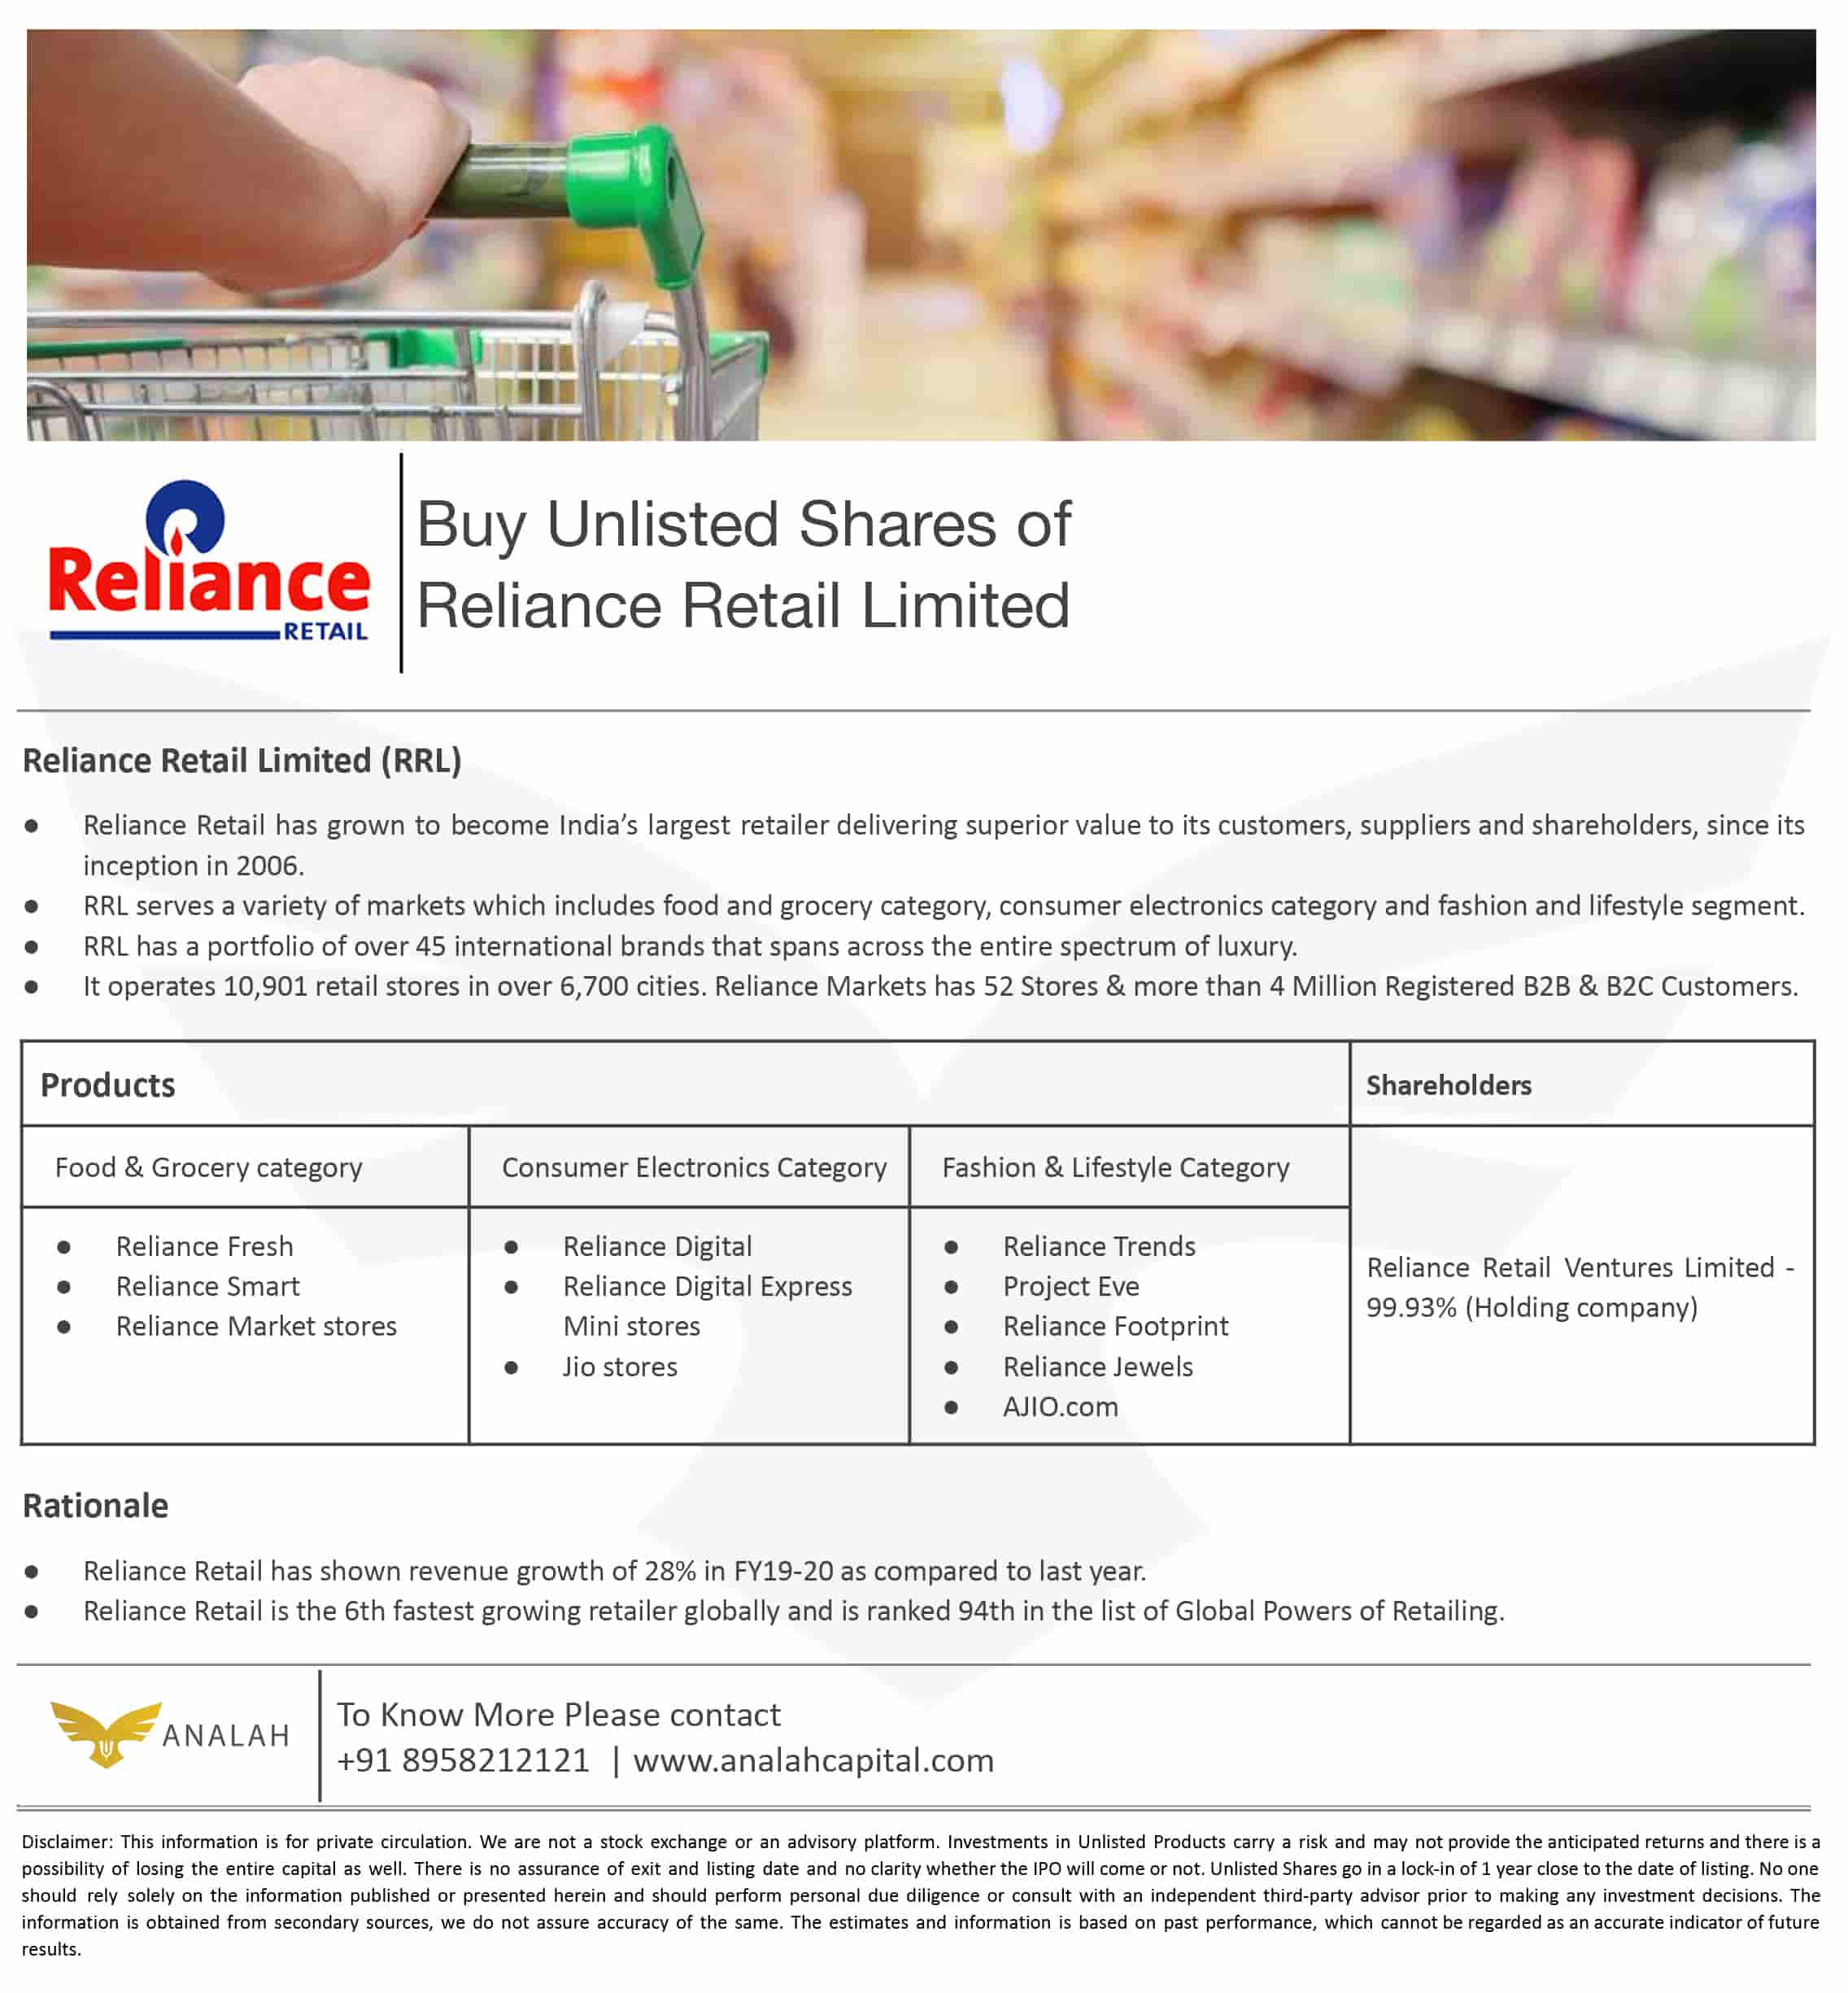 Reliance Retail Unlisted Shares